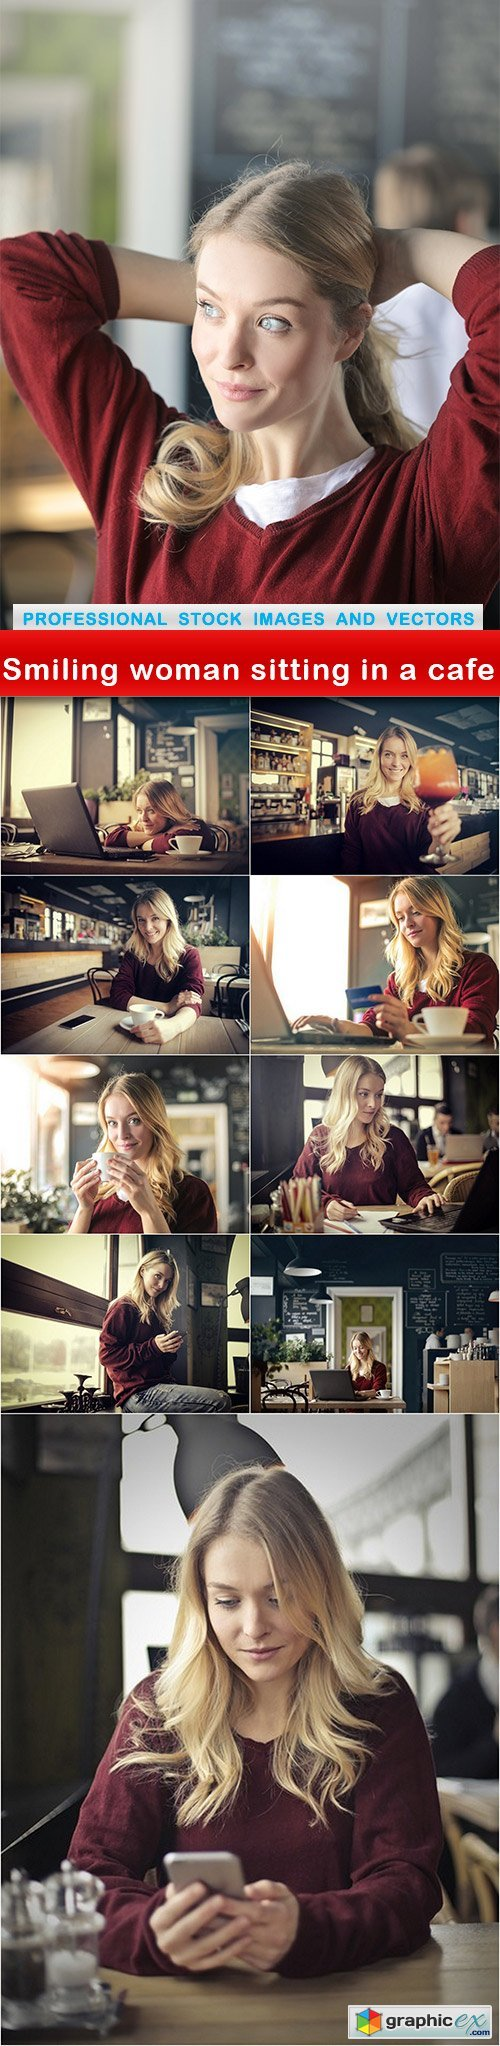 Smiling woman sitting in a cafe - 10 UHQ JPEG